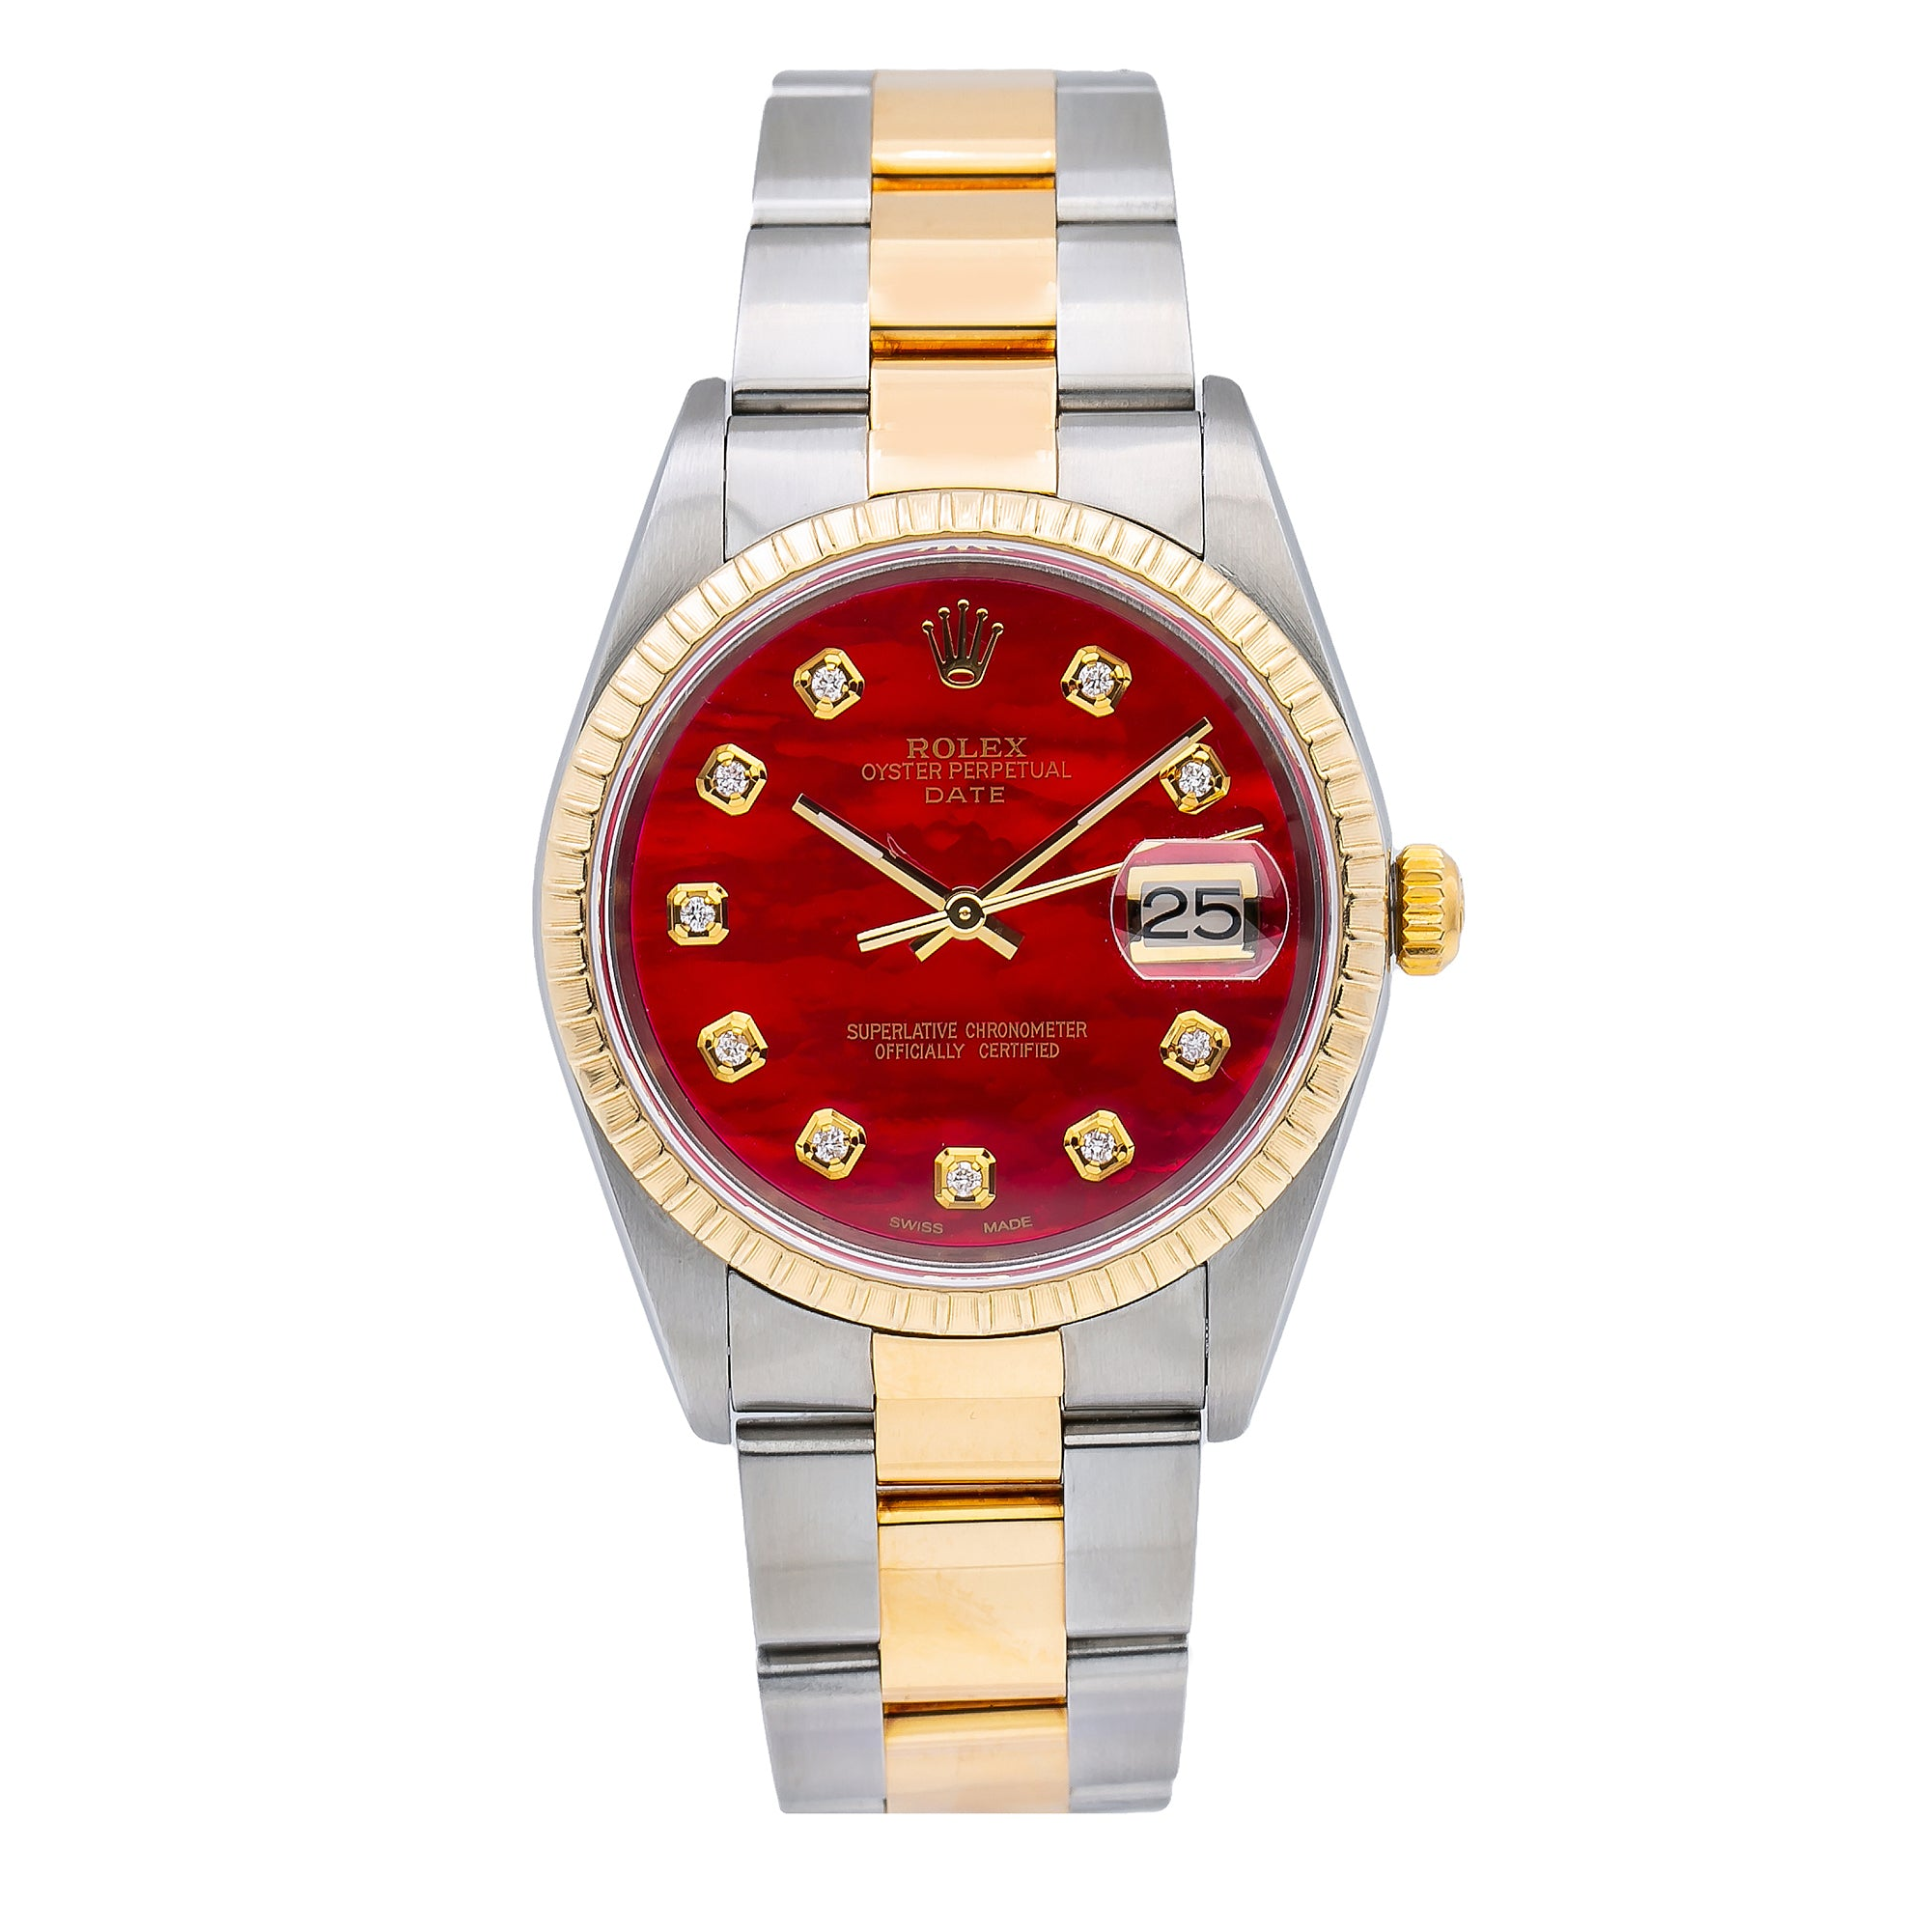 Rolex Oyster Perpetual Date 15223 34MM Red Diamond Dial With 1.20 CT Diamonds